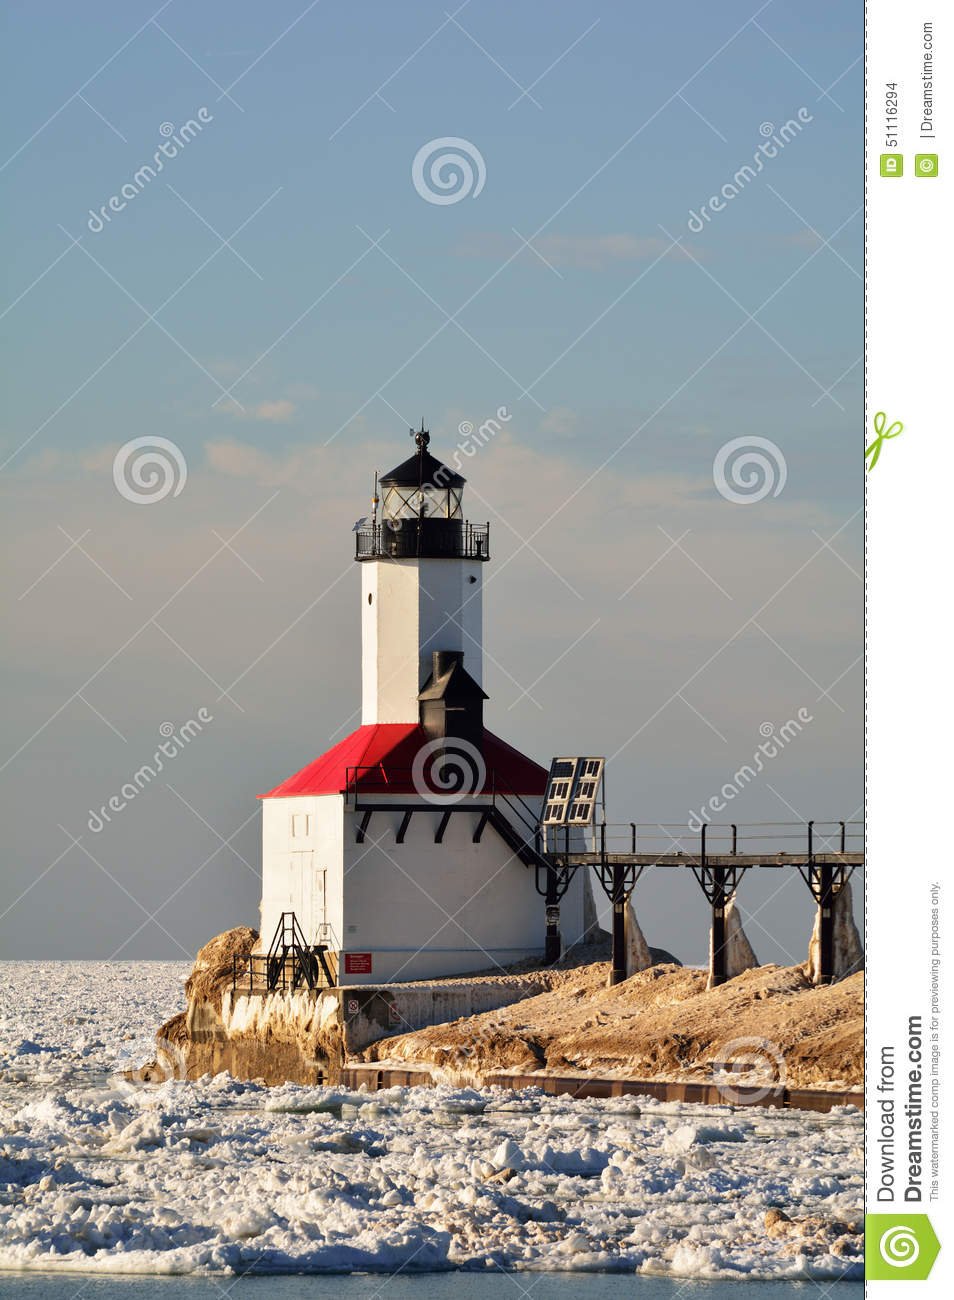 Lighthouse on Sunny Day in Winter